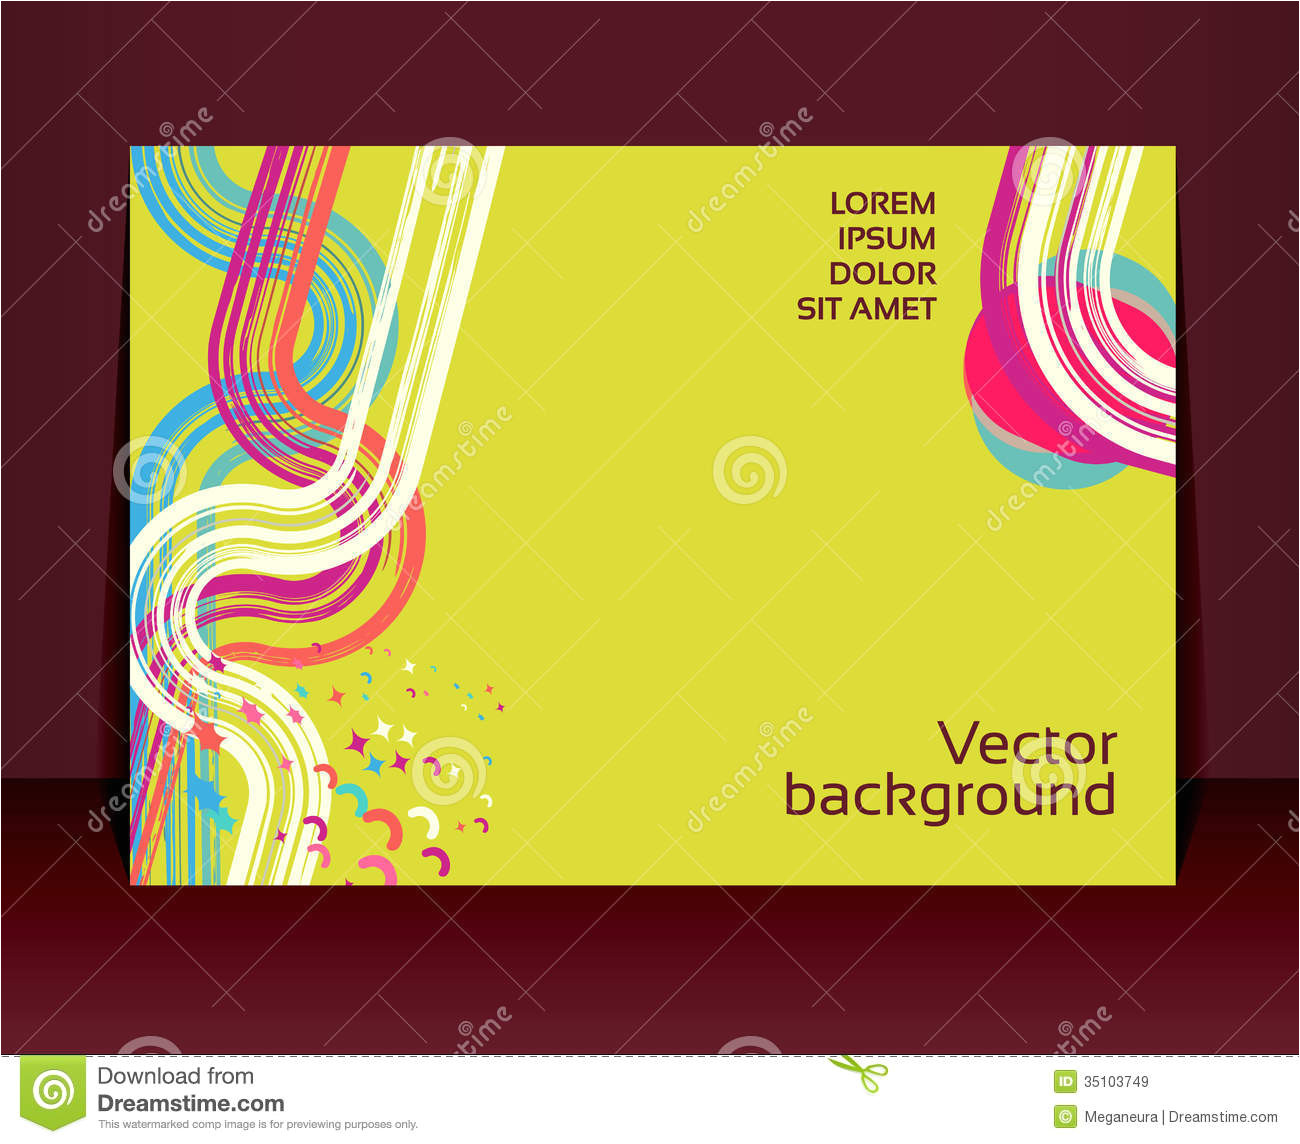 royalty free stock images flyer leaflet booklet layout editable design te template eps vector transparencies used image35103749